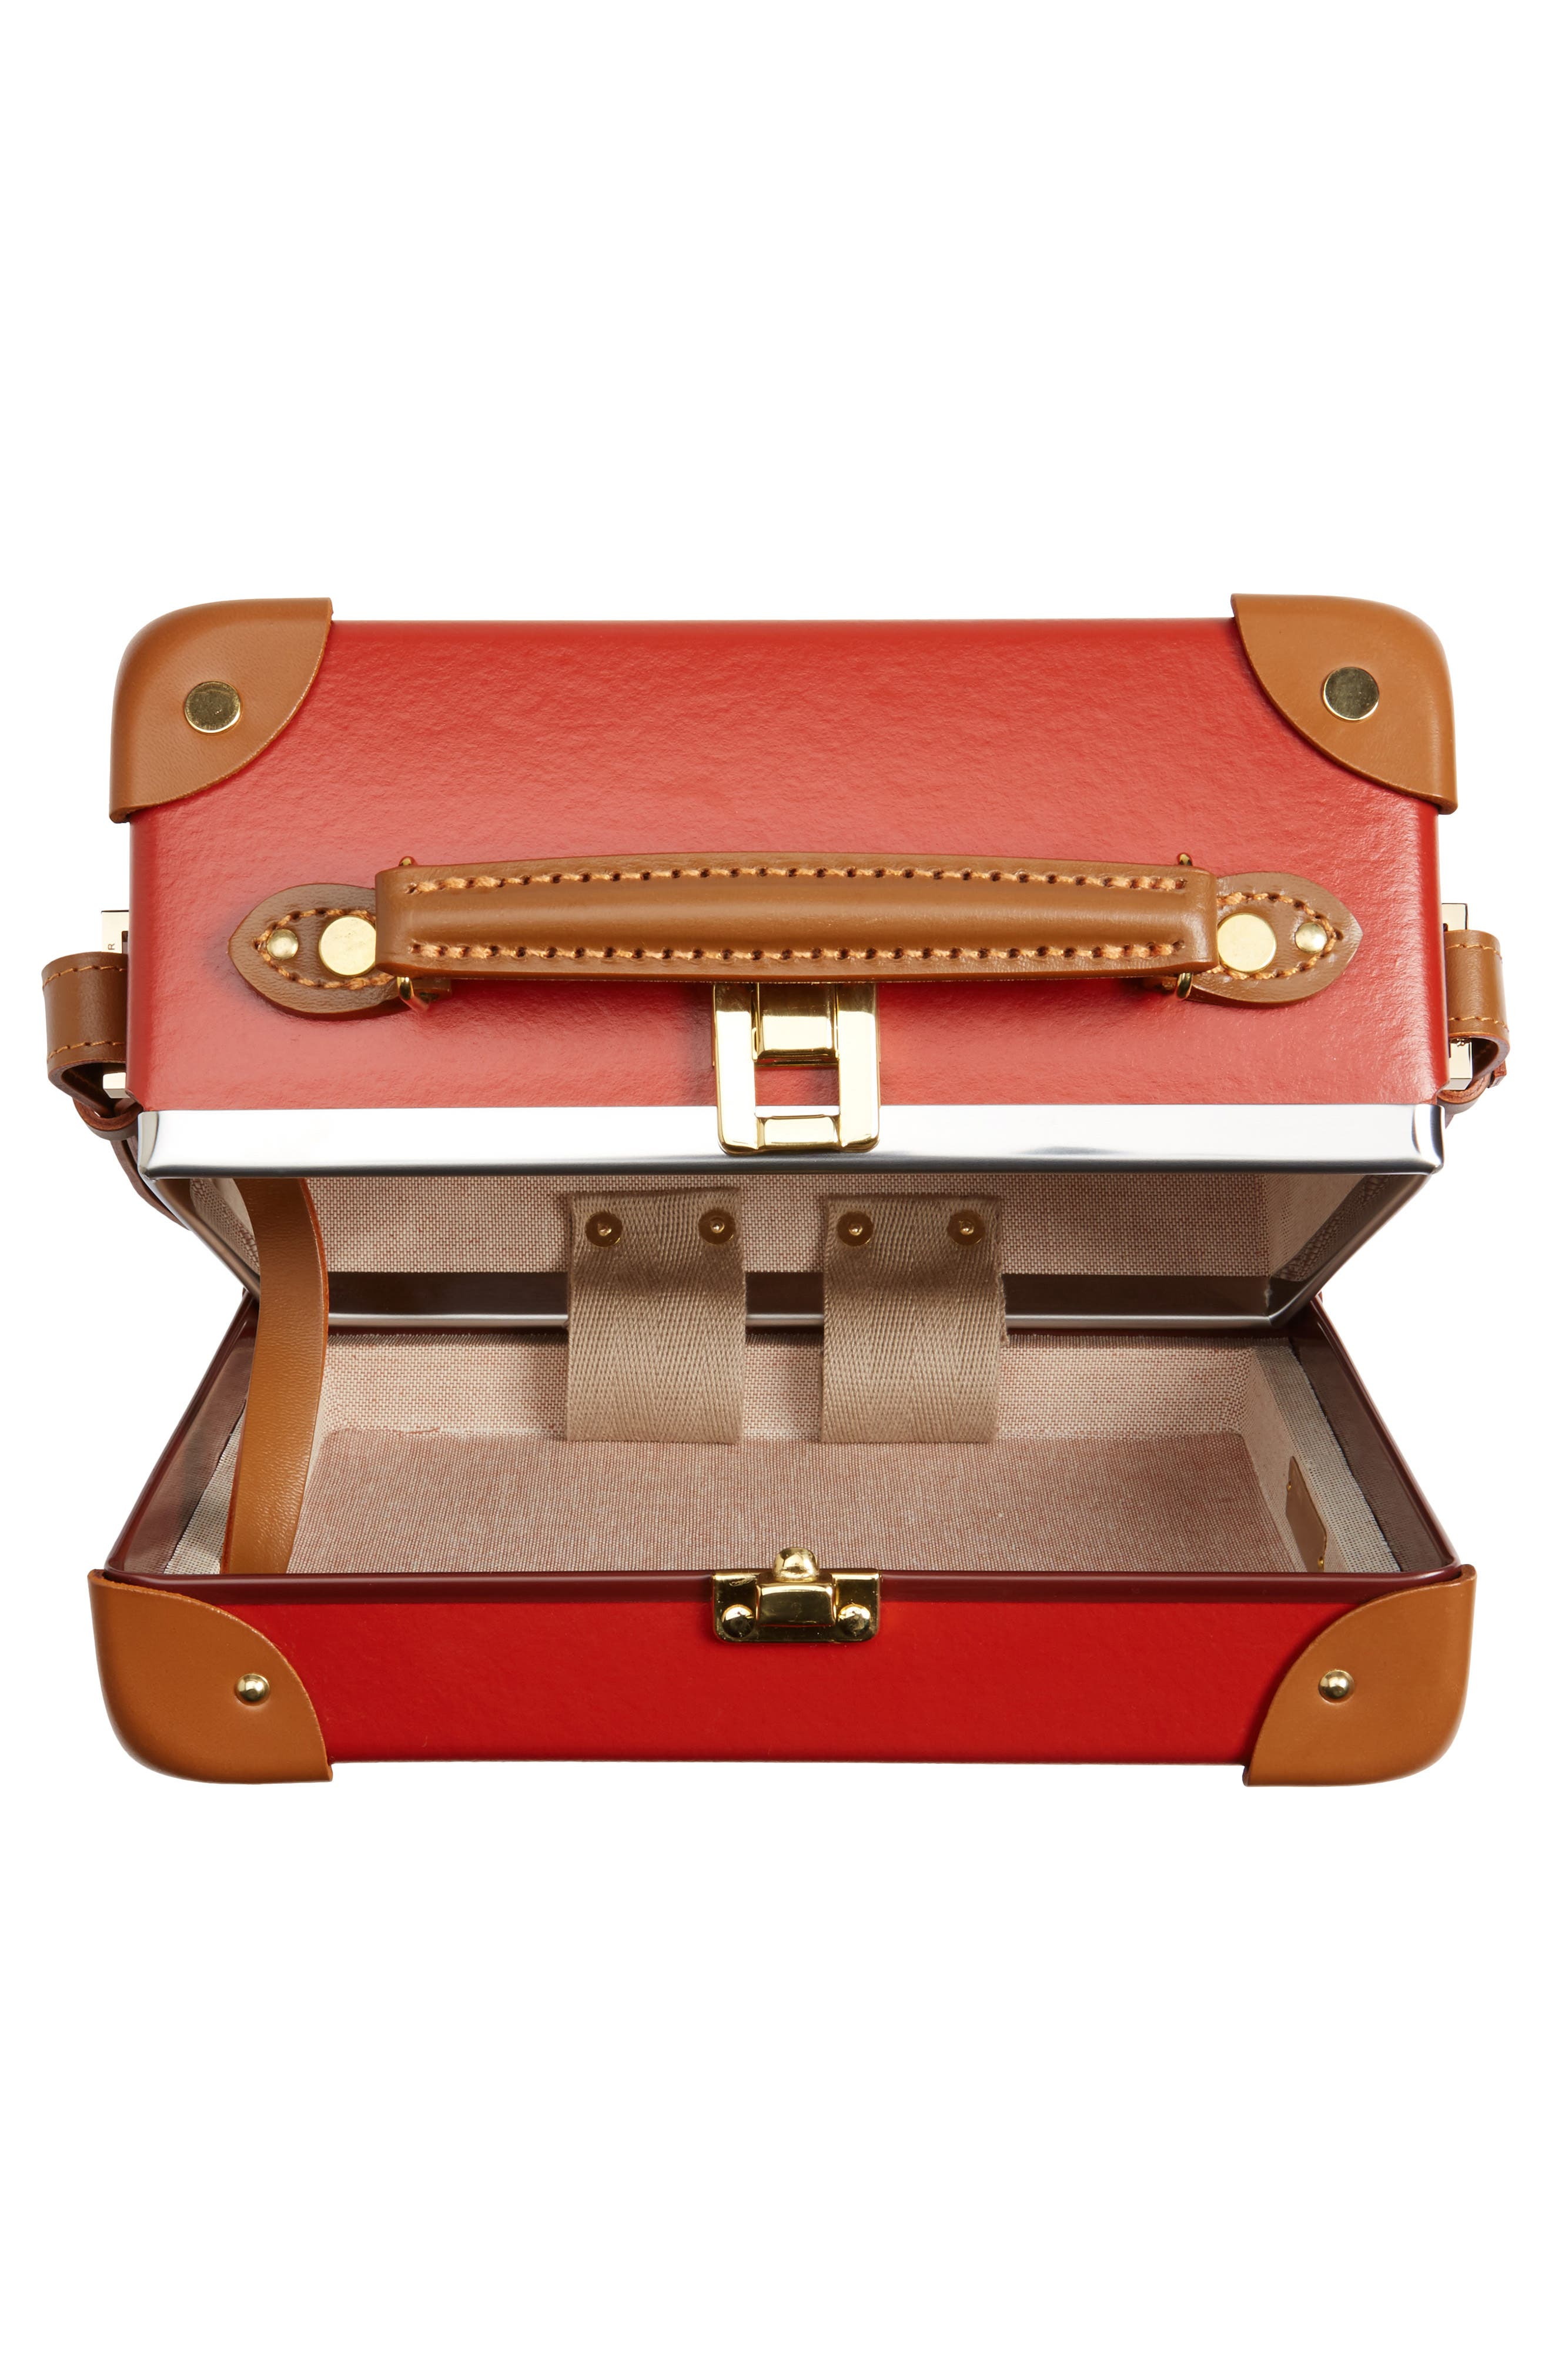 Safari 9-Inch Mini Utility Hardshell Travel Case,                             Alternate thumbnail 2, color,                             Red/Caramel